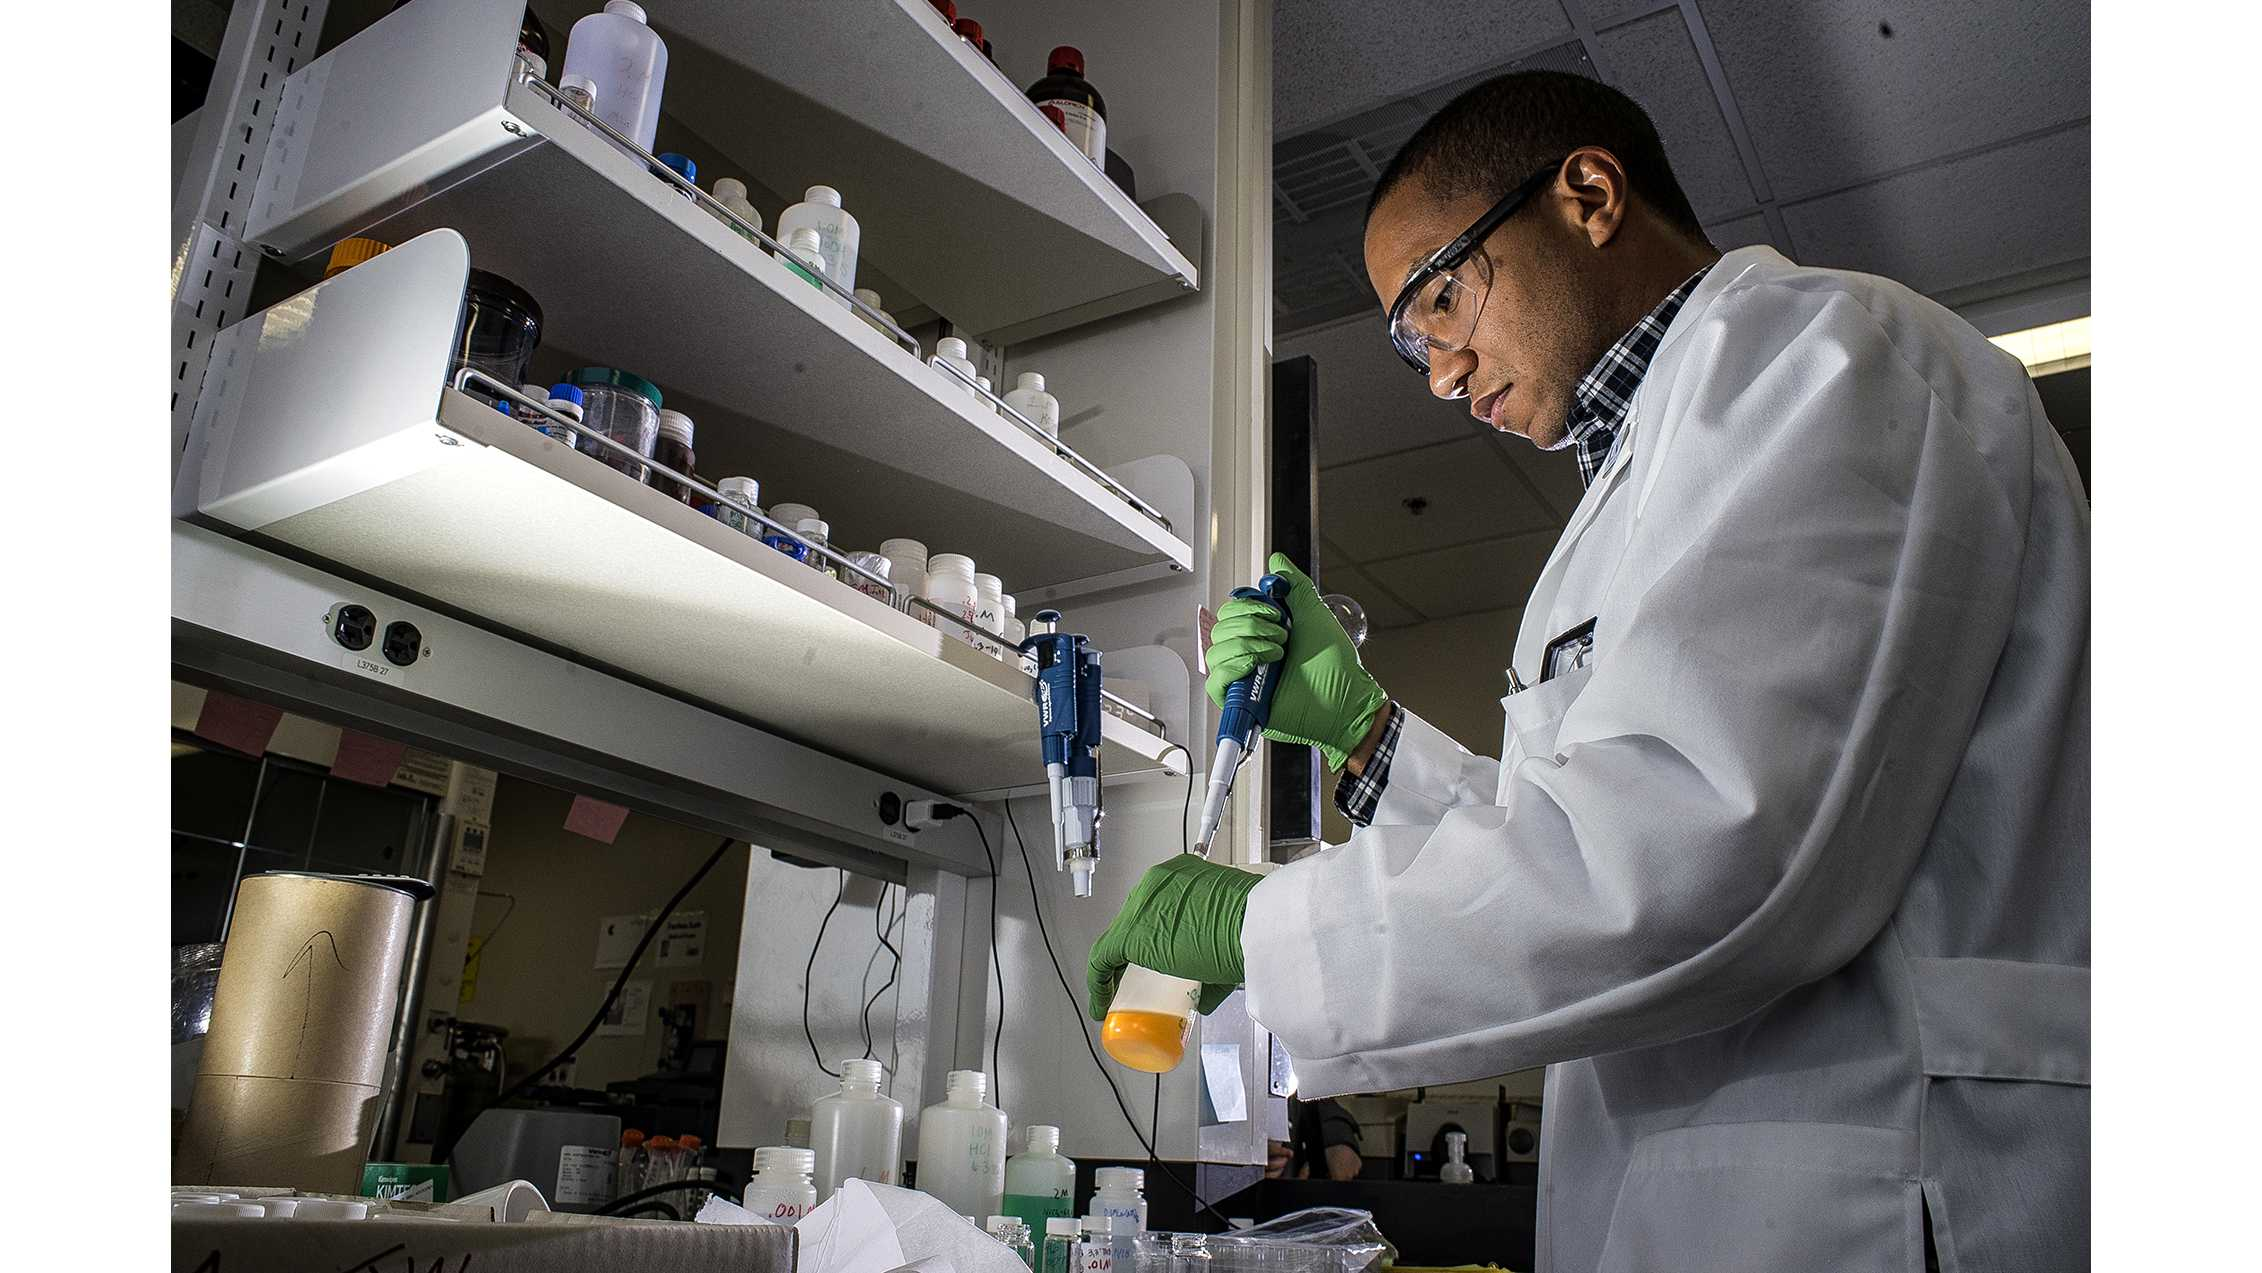 UI grad student, Mo Payne, prepares vials to stimulate uranium crystal growth in his laboratory on Wednesday, March 28, 2018. The research being conducted at the UI is focused on improving nuclear waste storage. (James Year/The Daily Iowan)